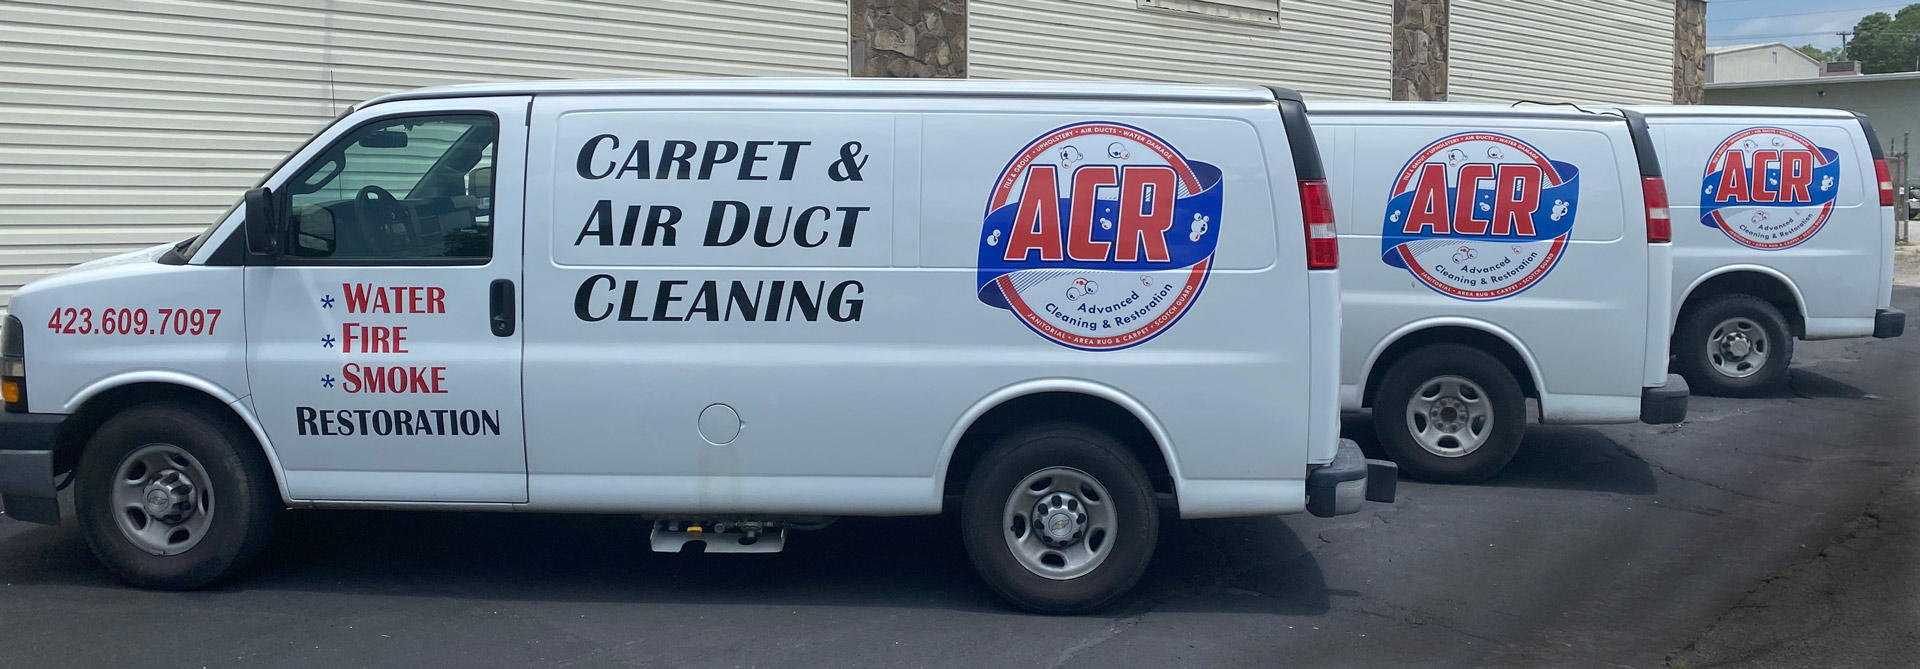 Three carpet cleaning vans with ACR logo in Greeneville, TN